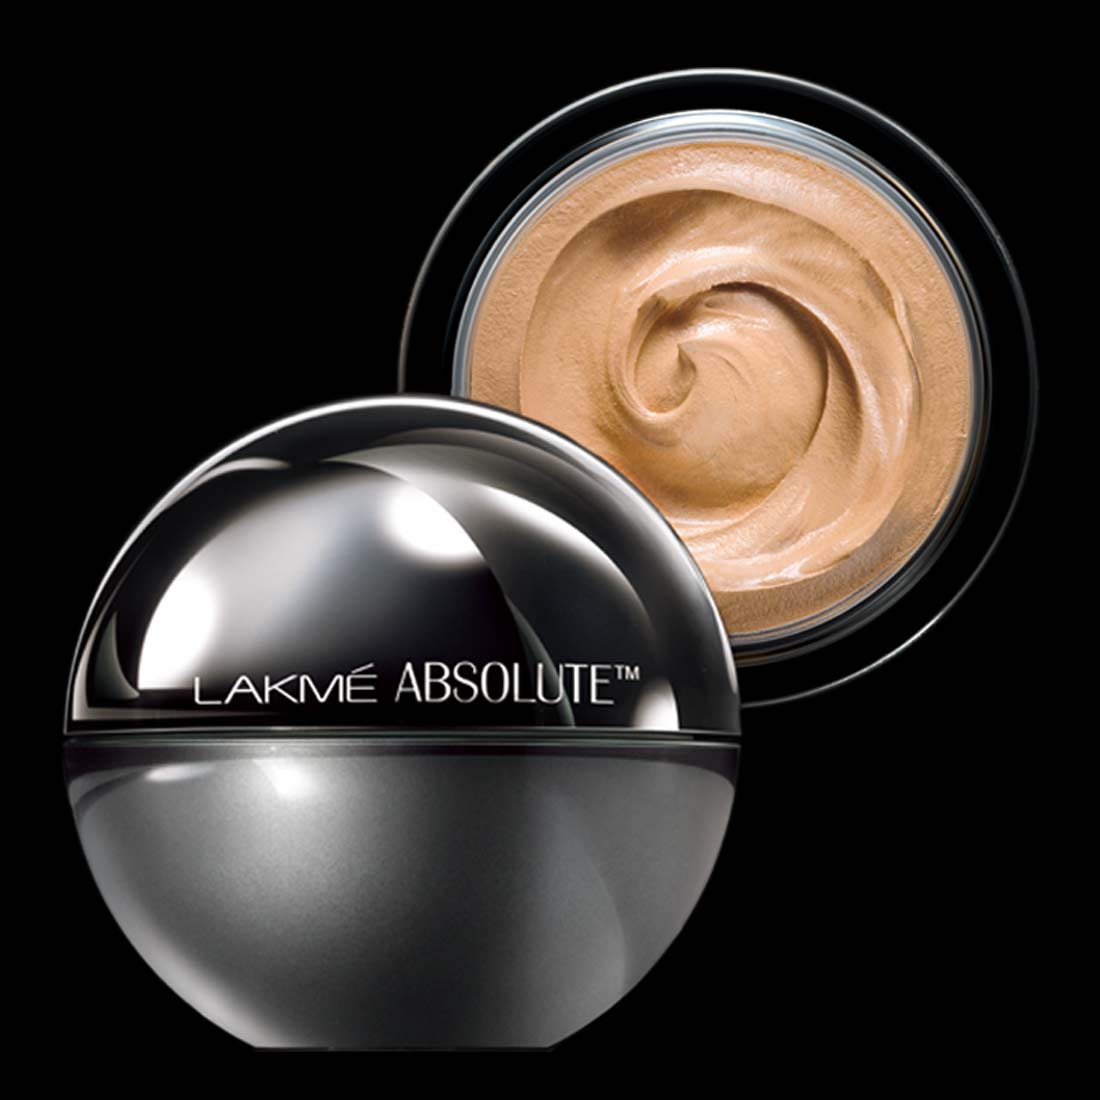 Lakme Absolute Image